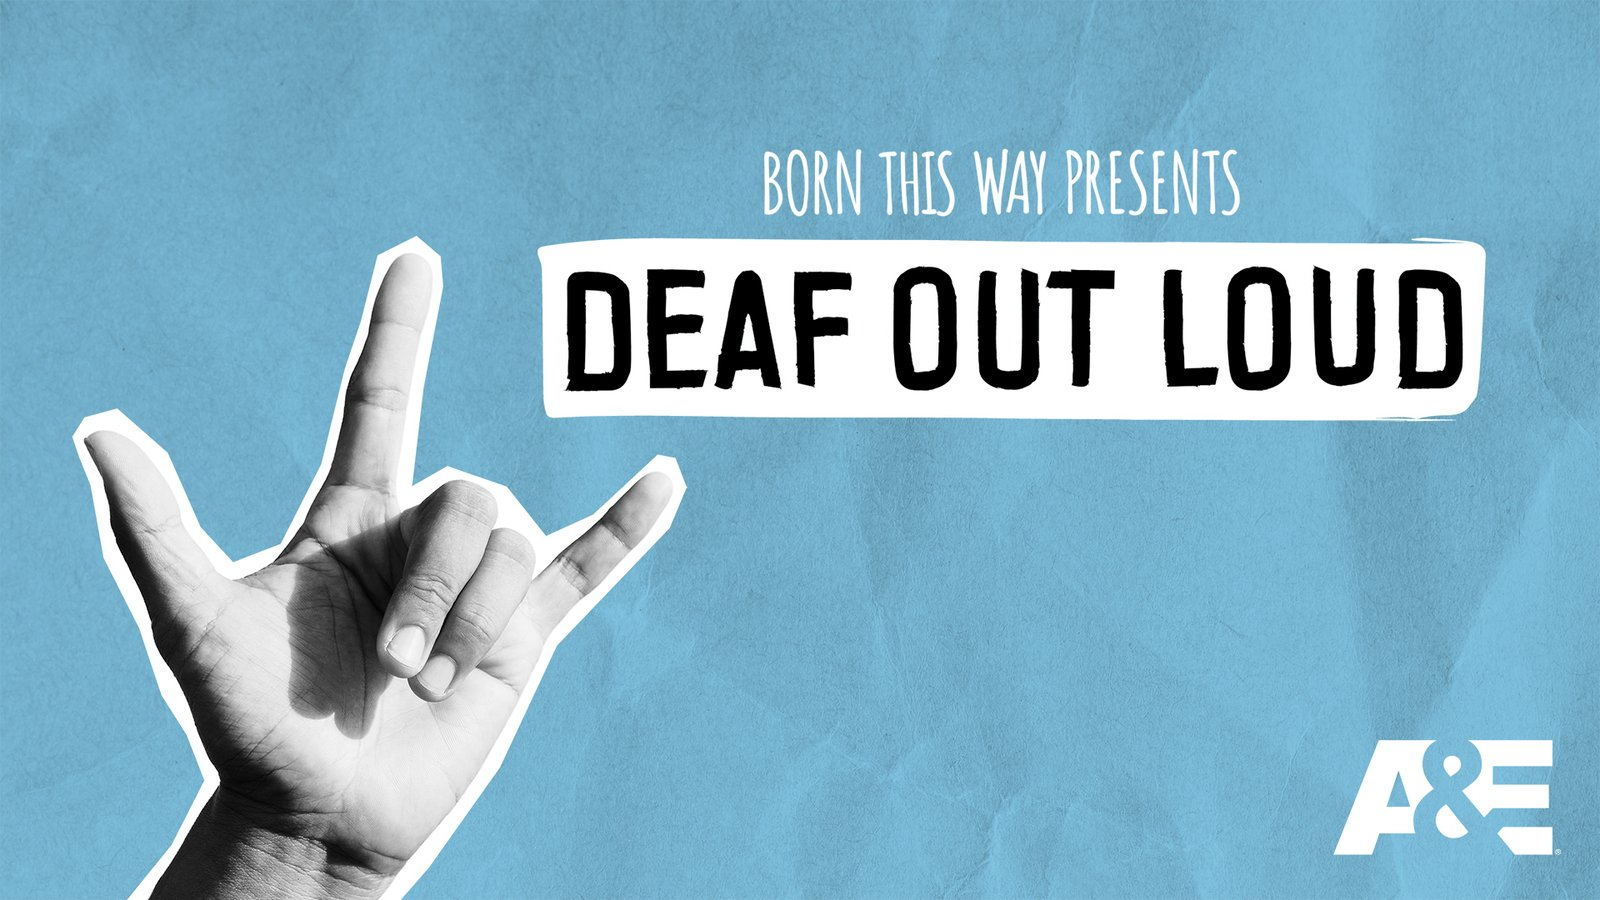 Born This Way Presents: Deaf Out Loud